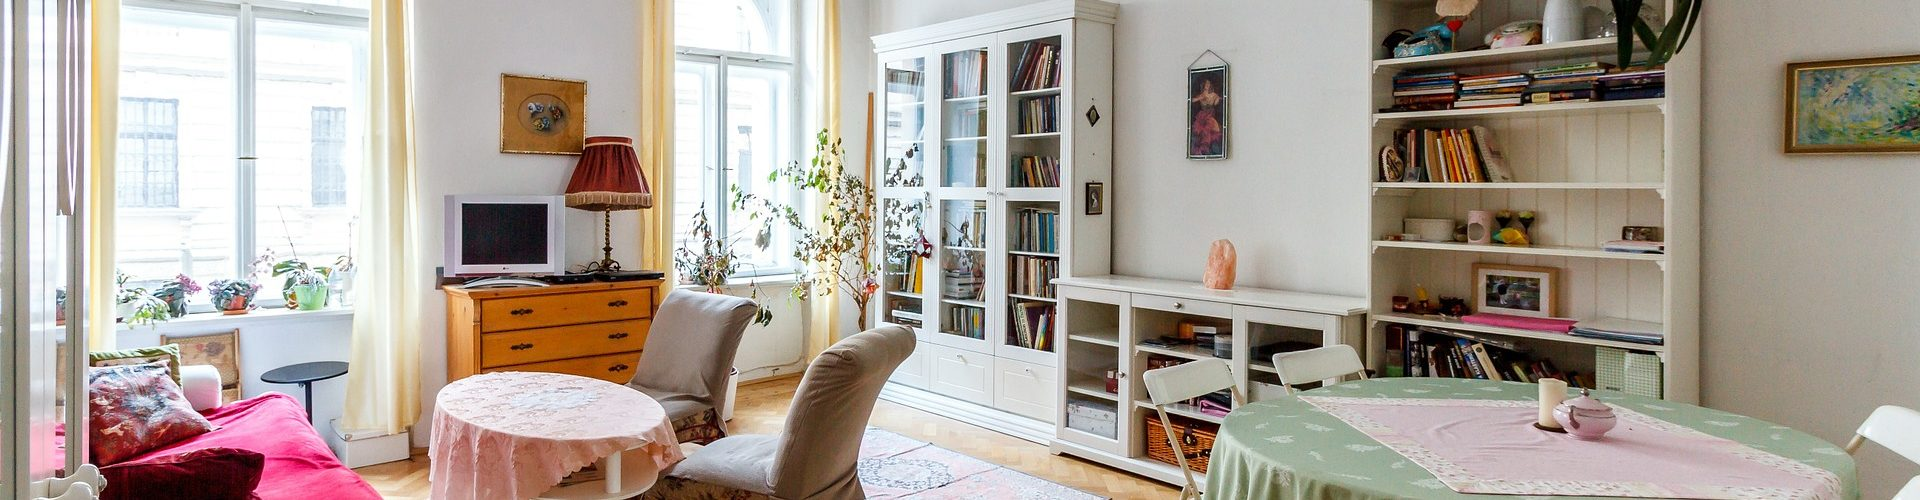 Smart tips to make the most of a small living room.